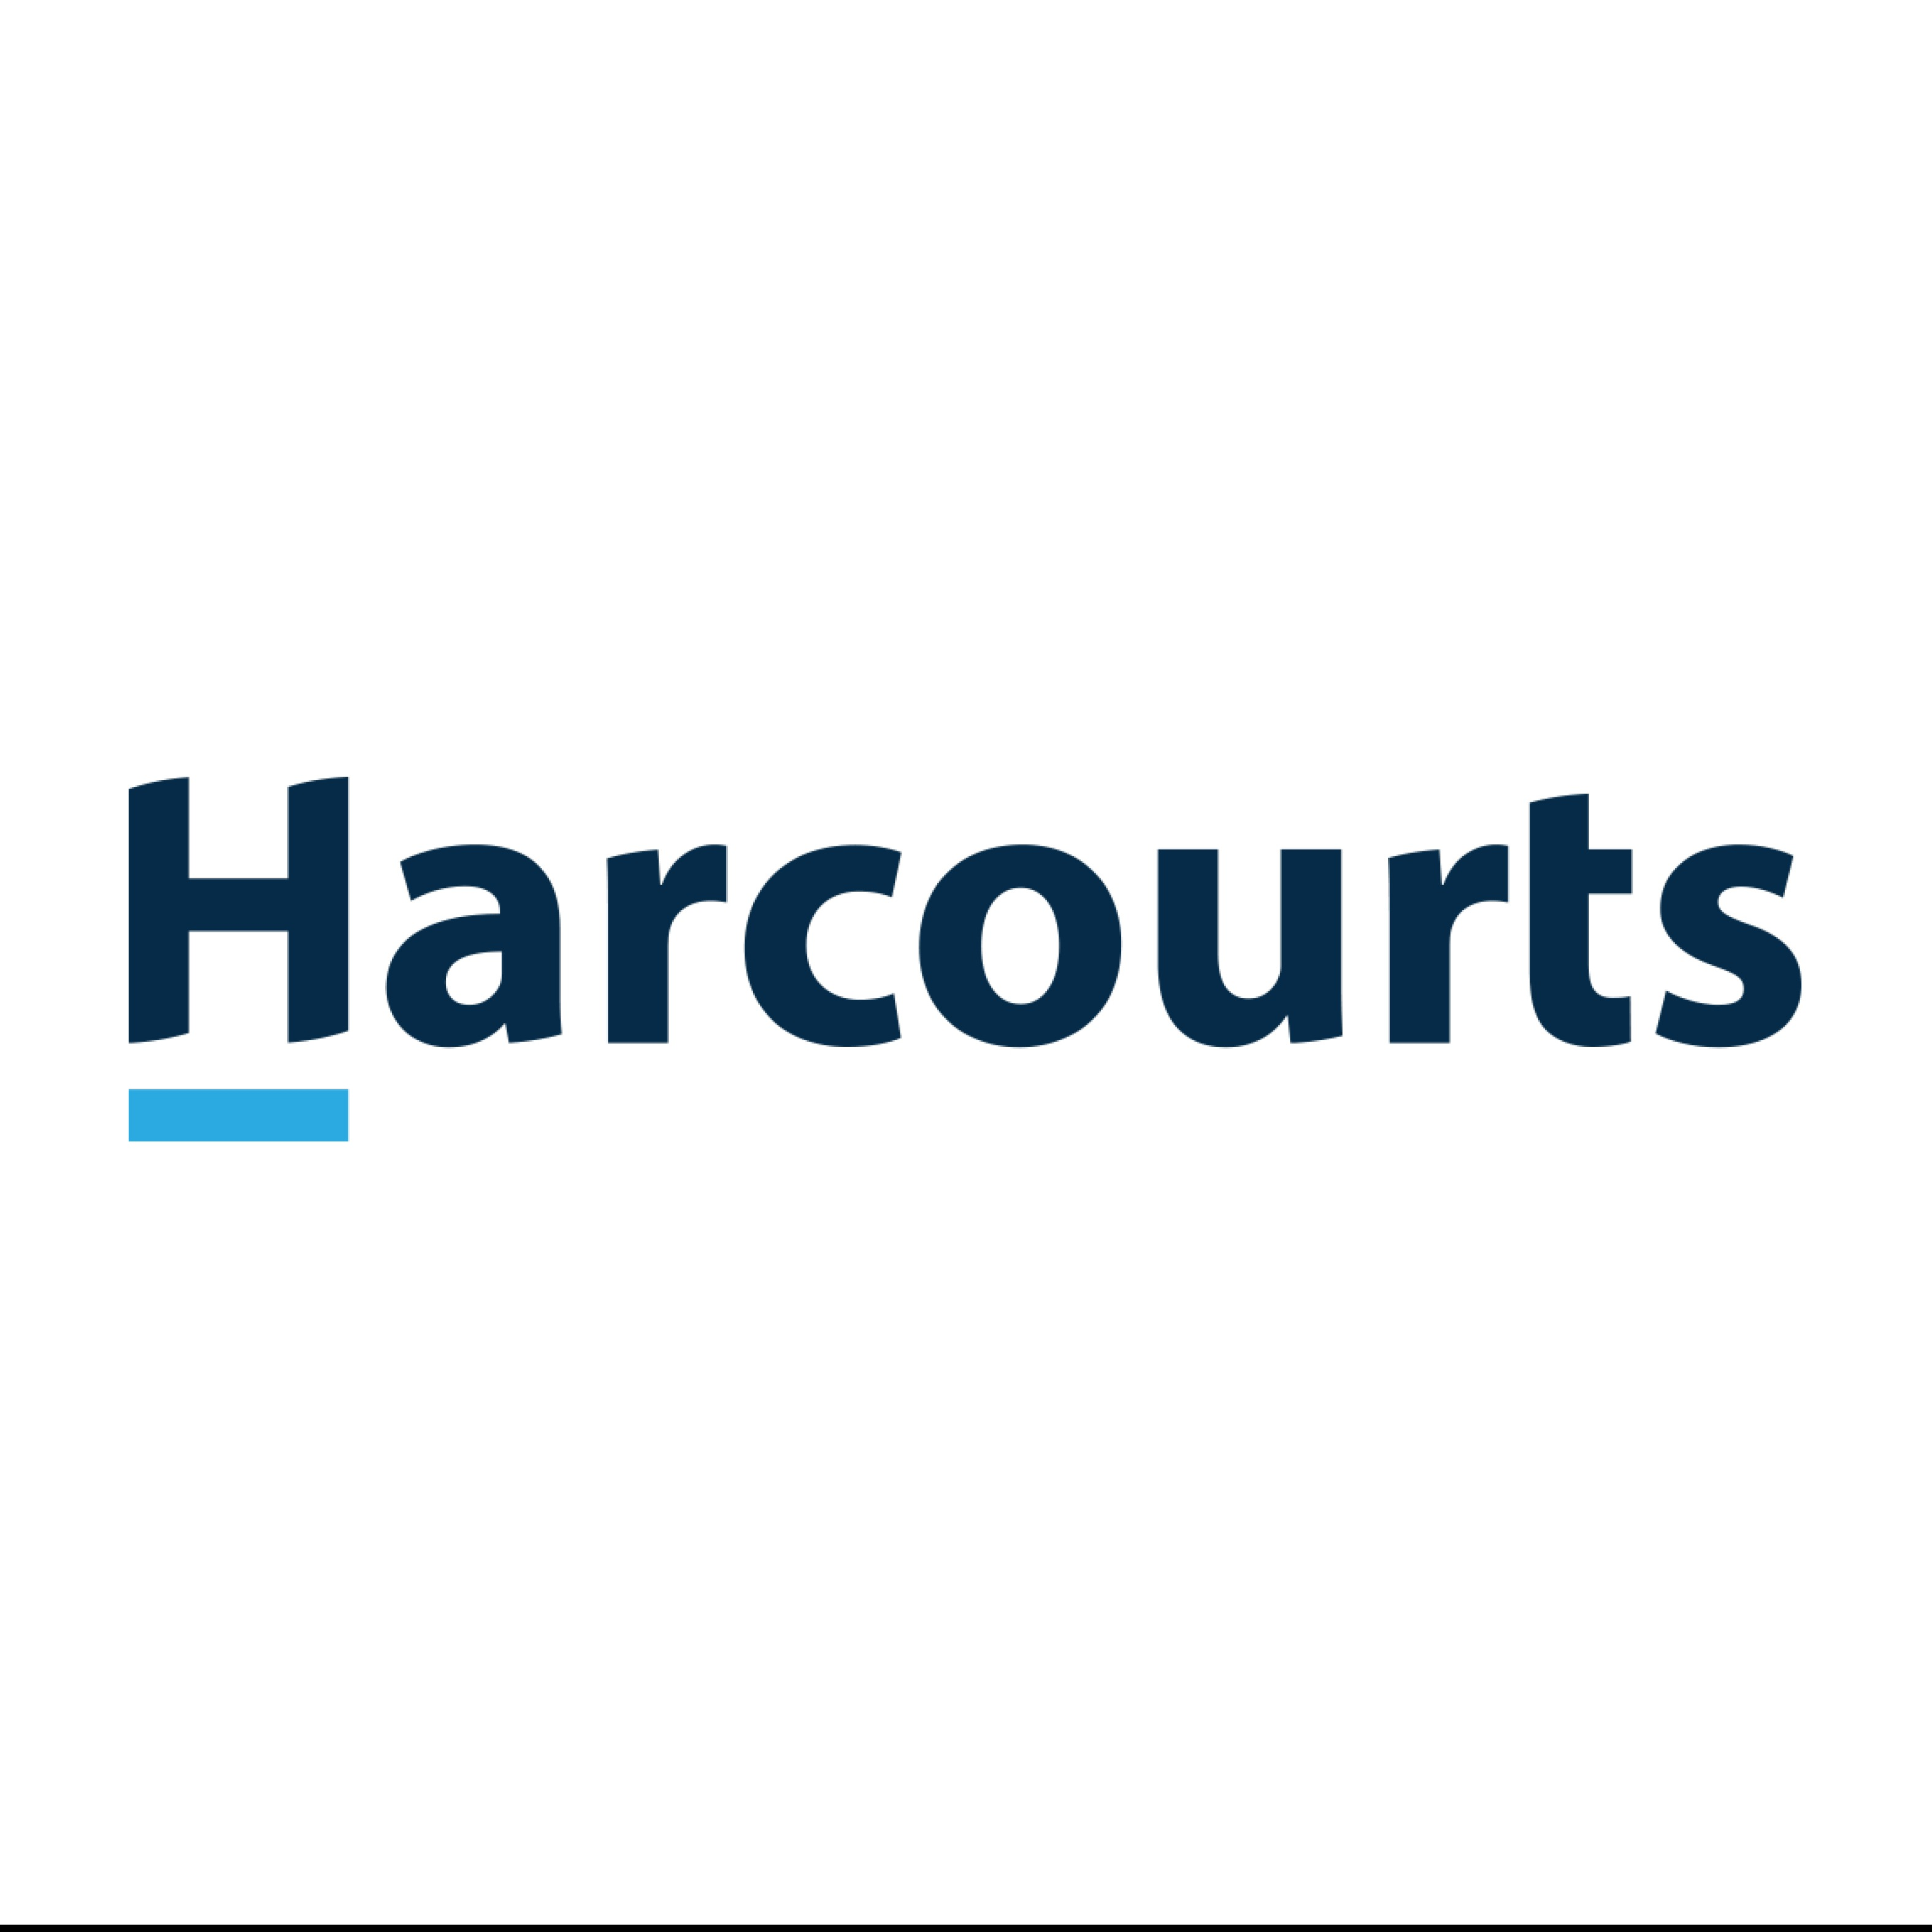 Nathan Buxton - Swanson Harcourts West Auckland